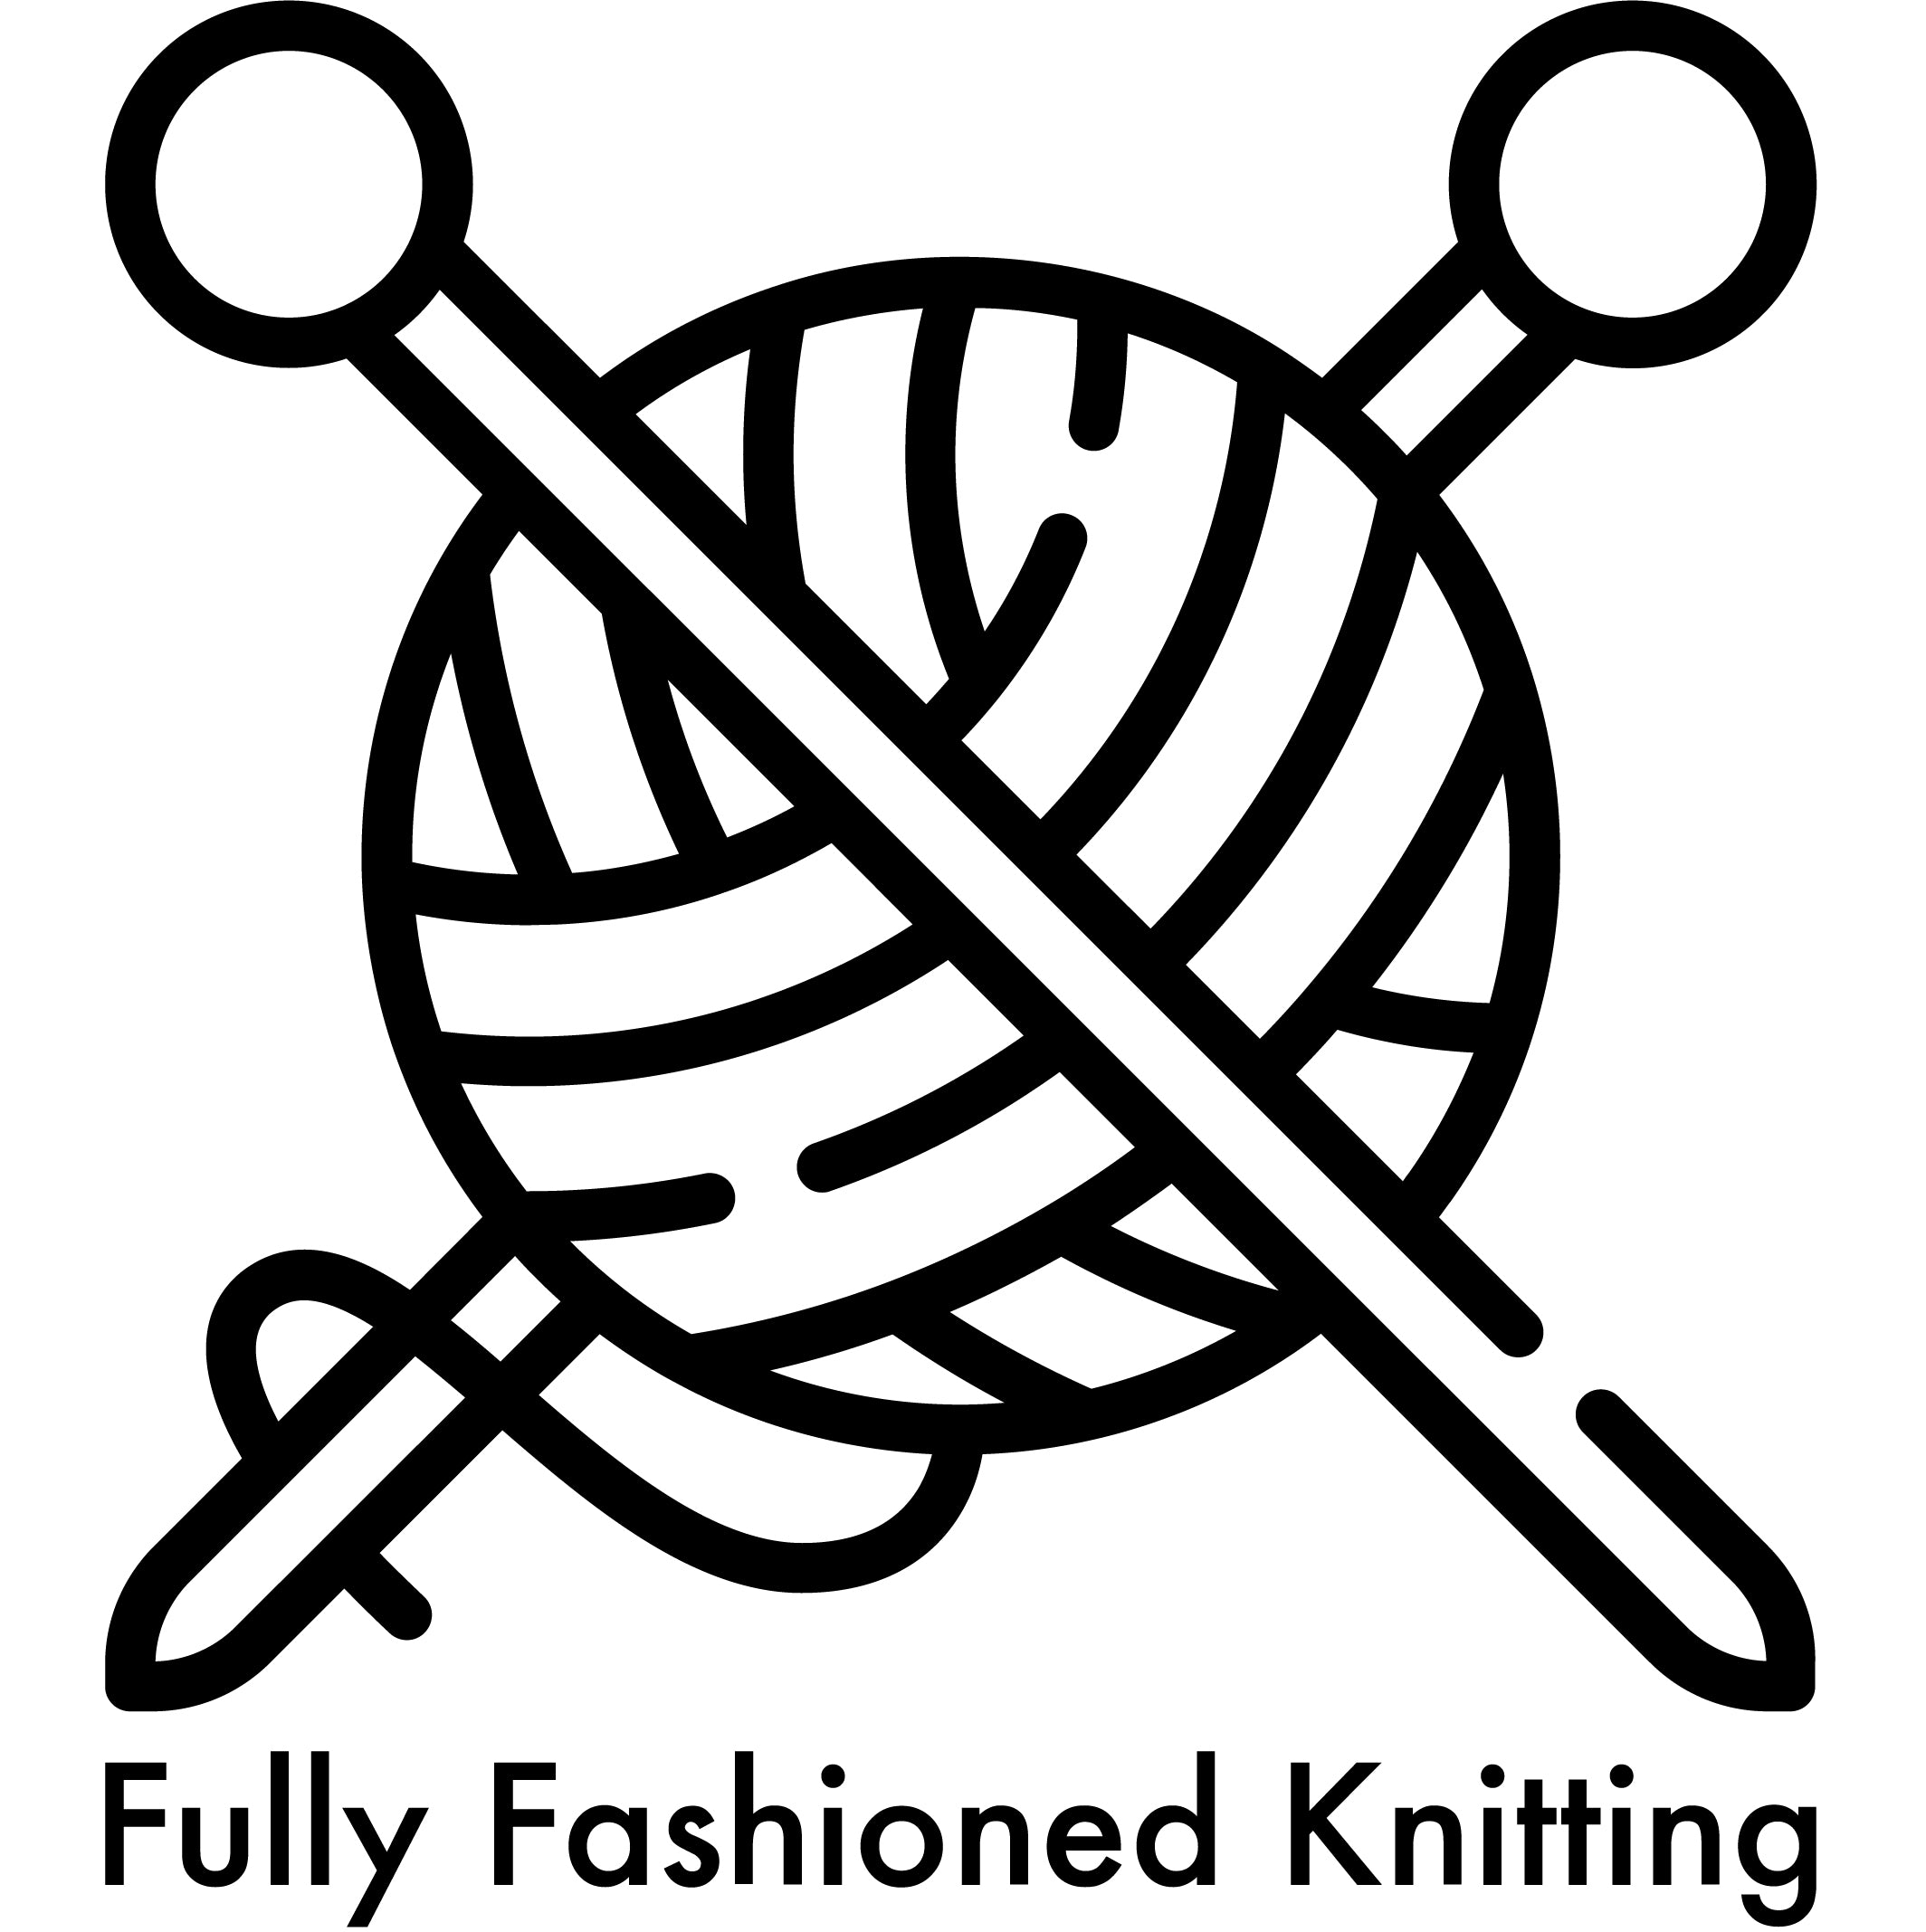 Fully Fashioned Knitting